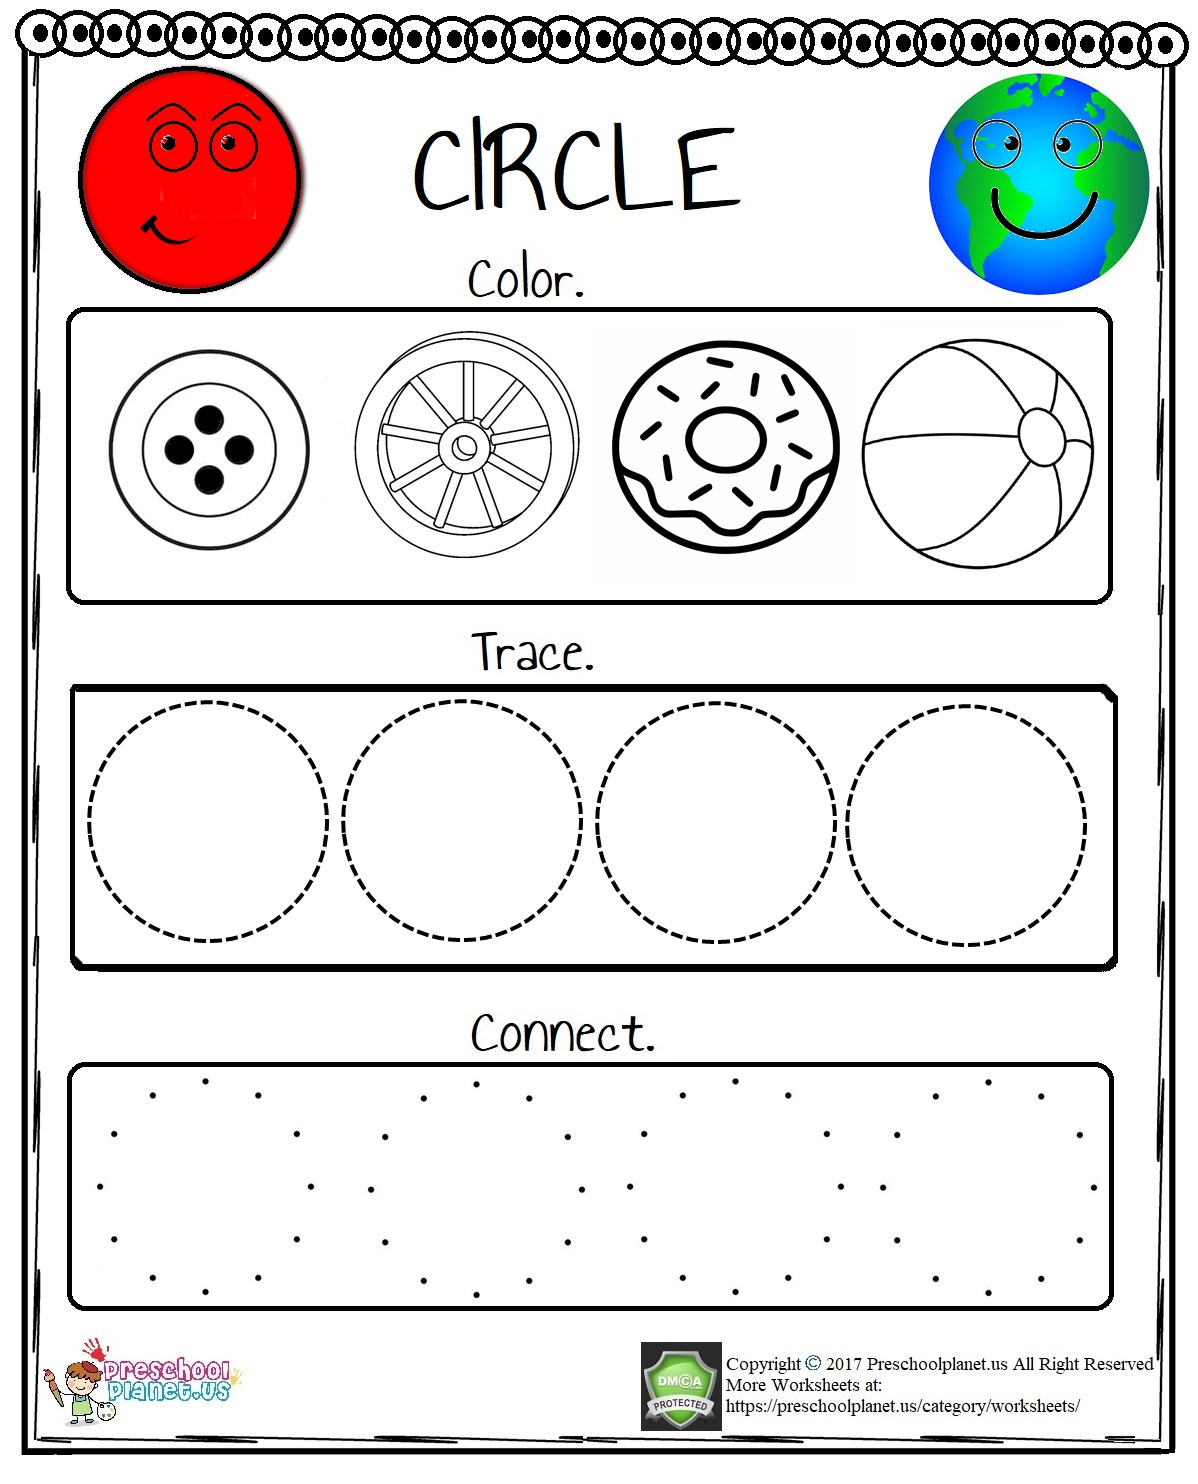 Circle Worksheet For Preschool Preschoolplanet